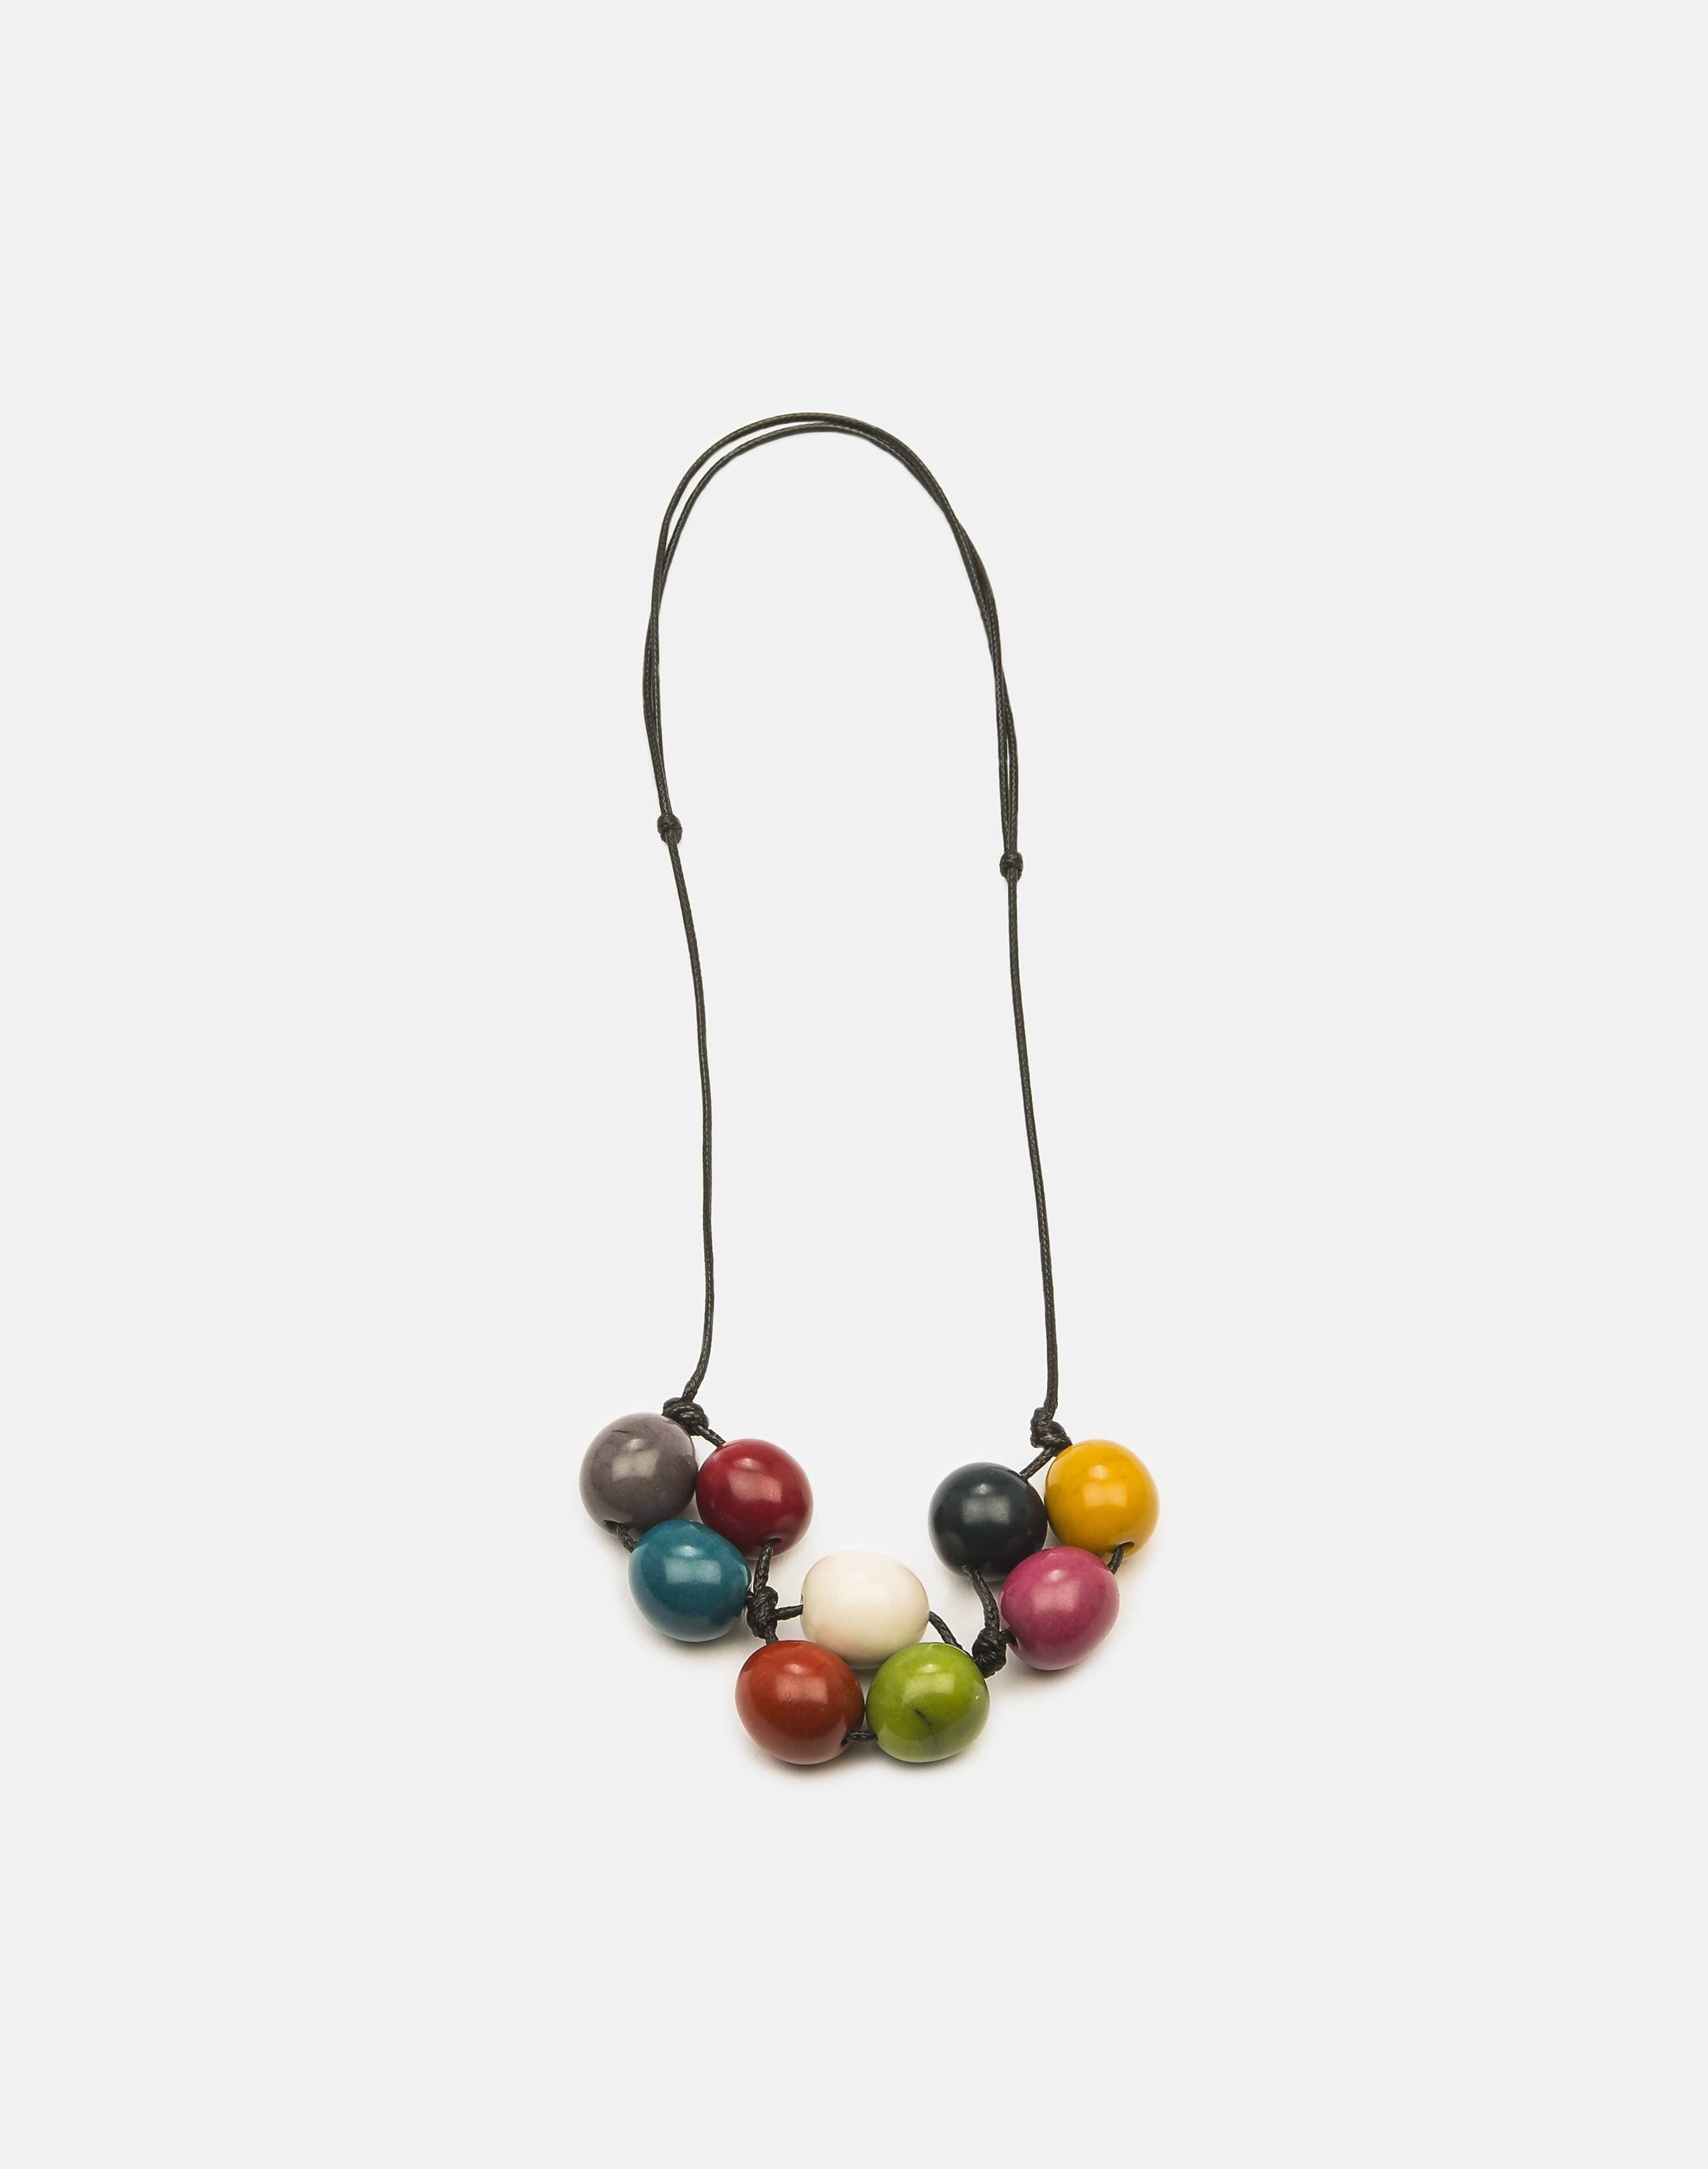 Handmade Tagua Nut Bolota Adjustable Necklace